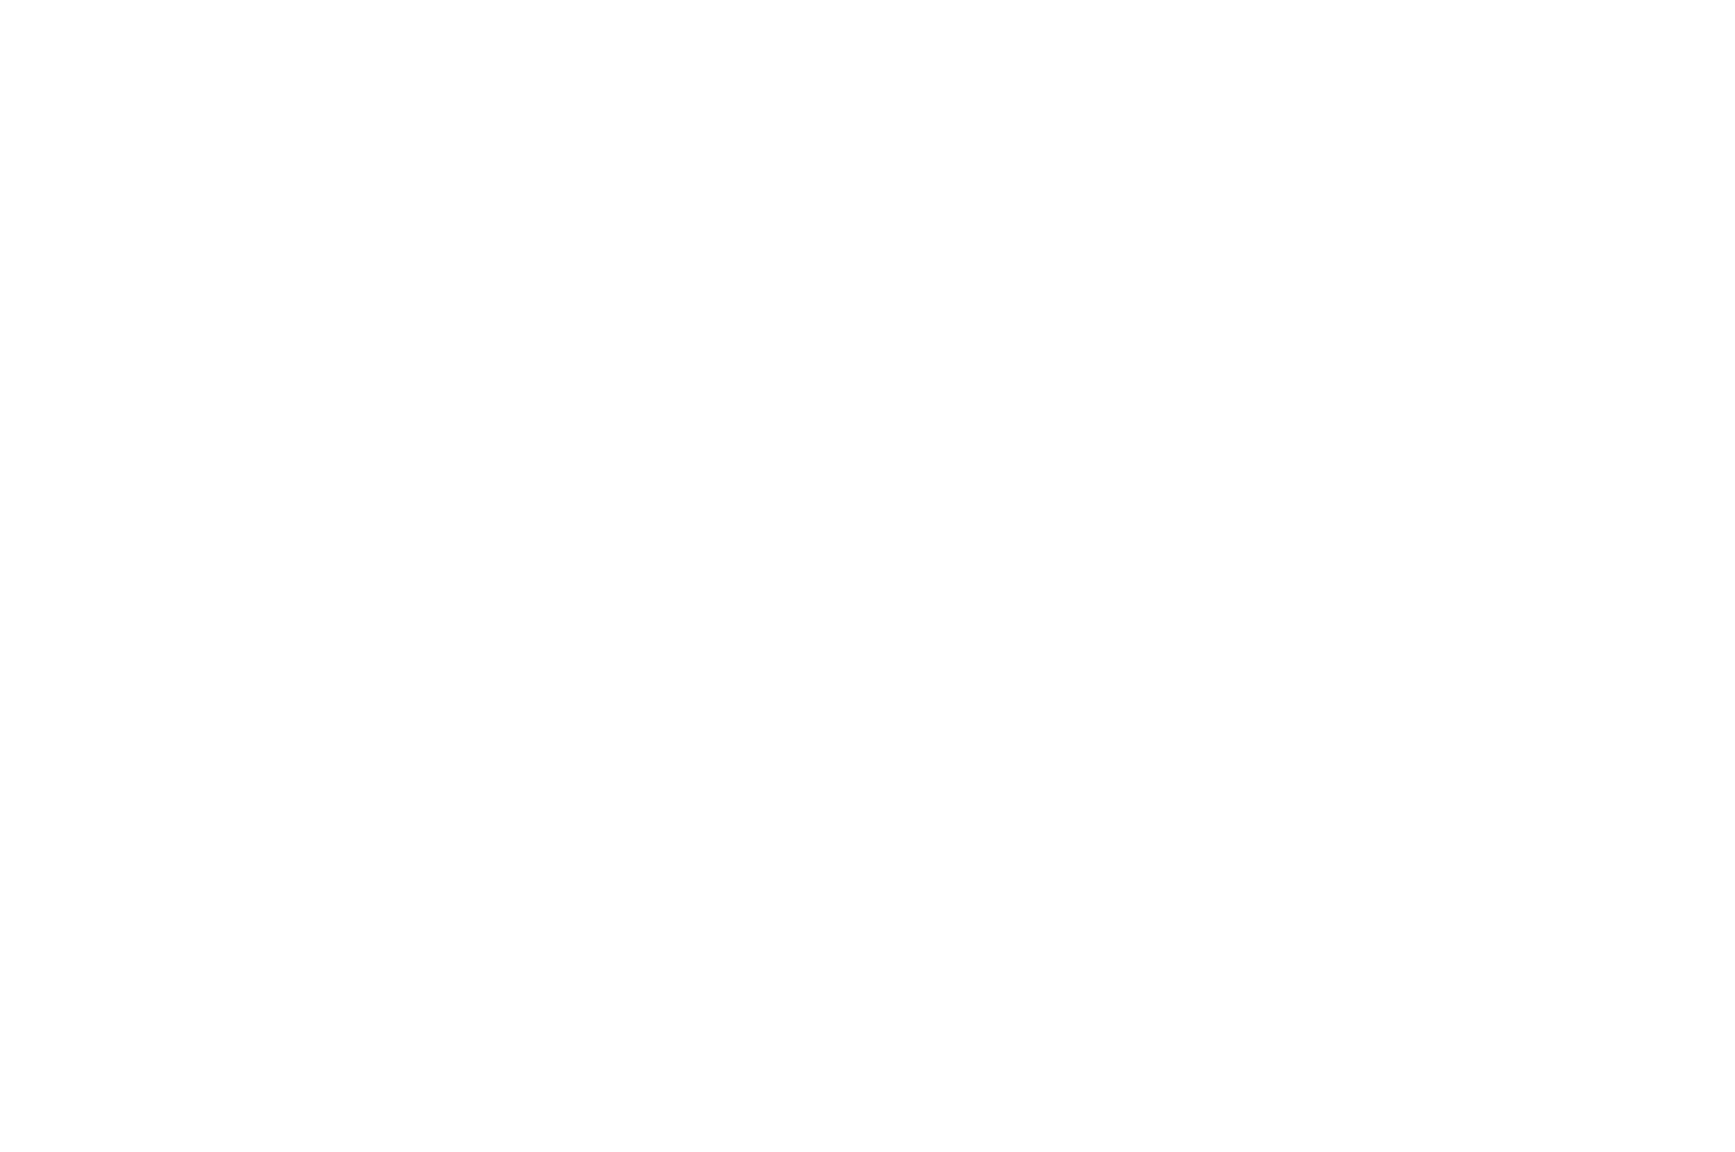 HONORABLE MENTION - Flathead Lake International Film Festival - 2014.png